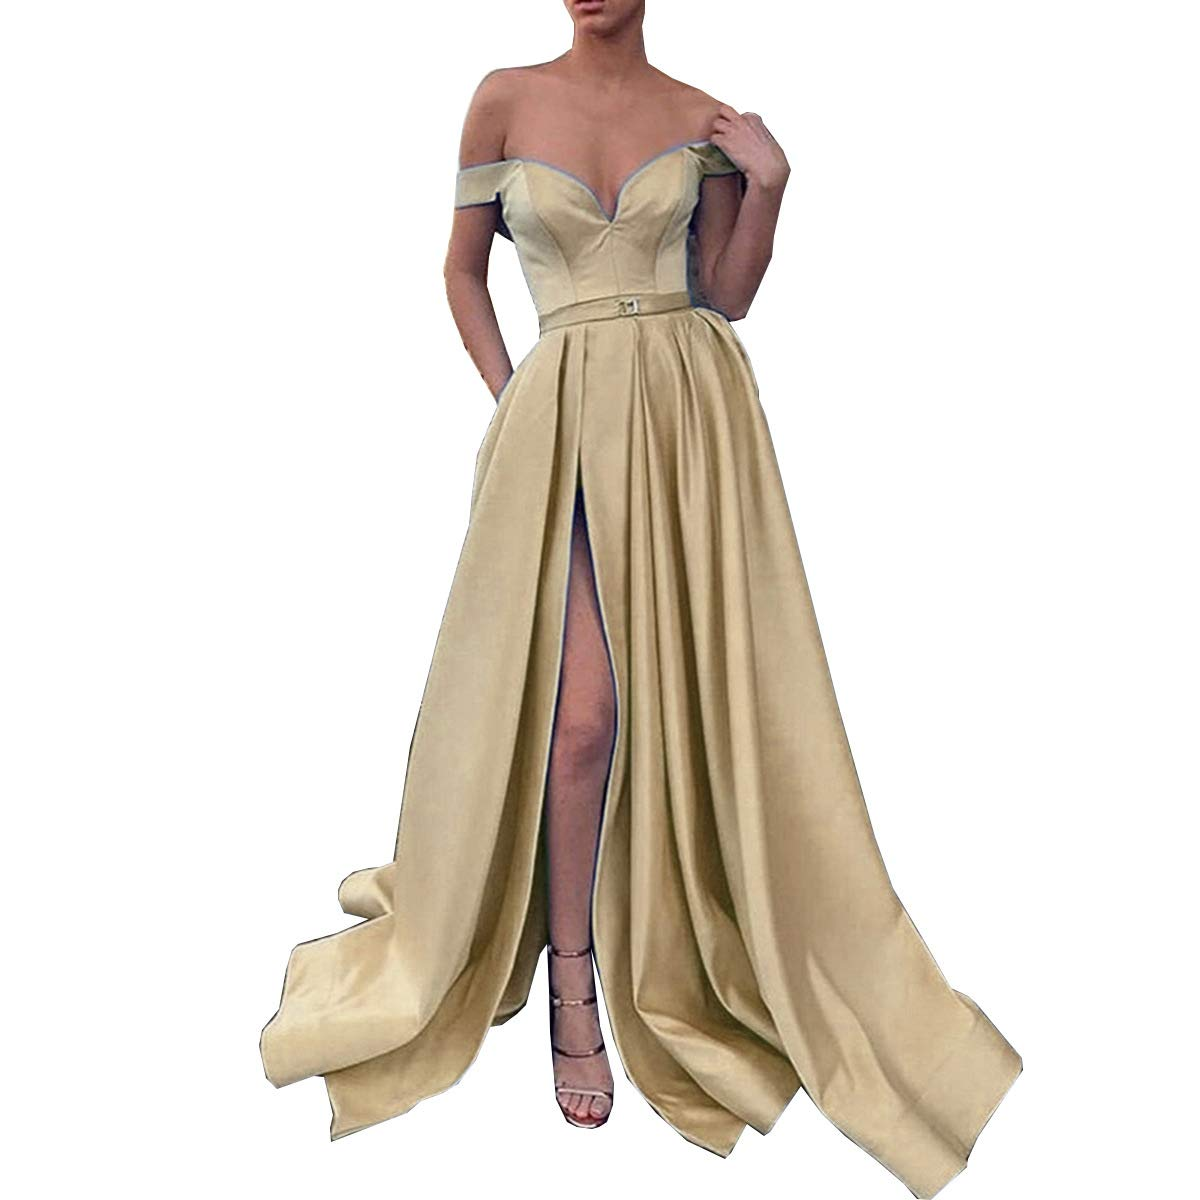 Champagne CCBubble Womens Long Satin Prom Dresses Off Shoulder High Slit Formal Evening Wedding Party Dress